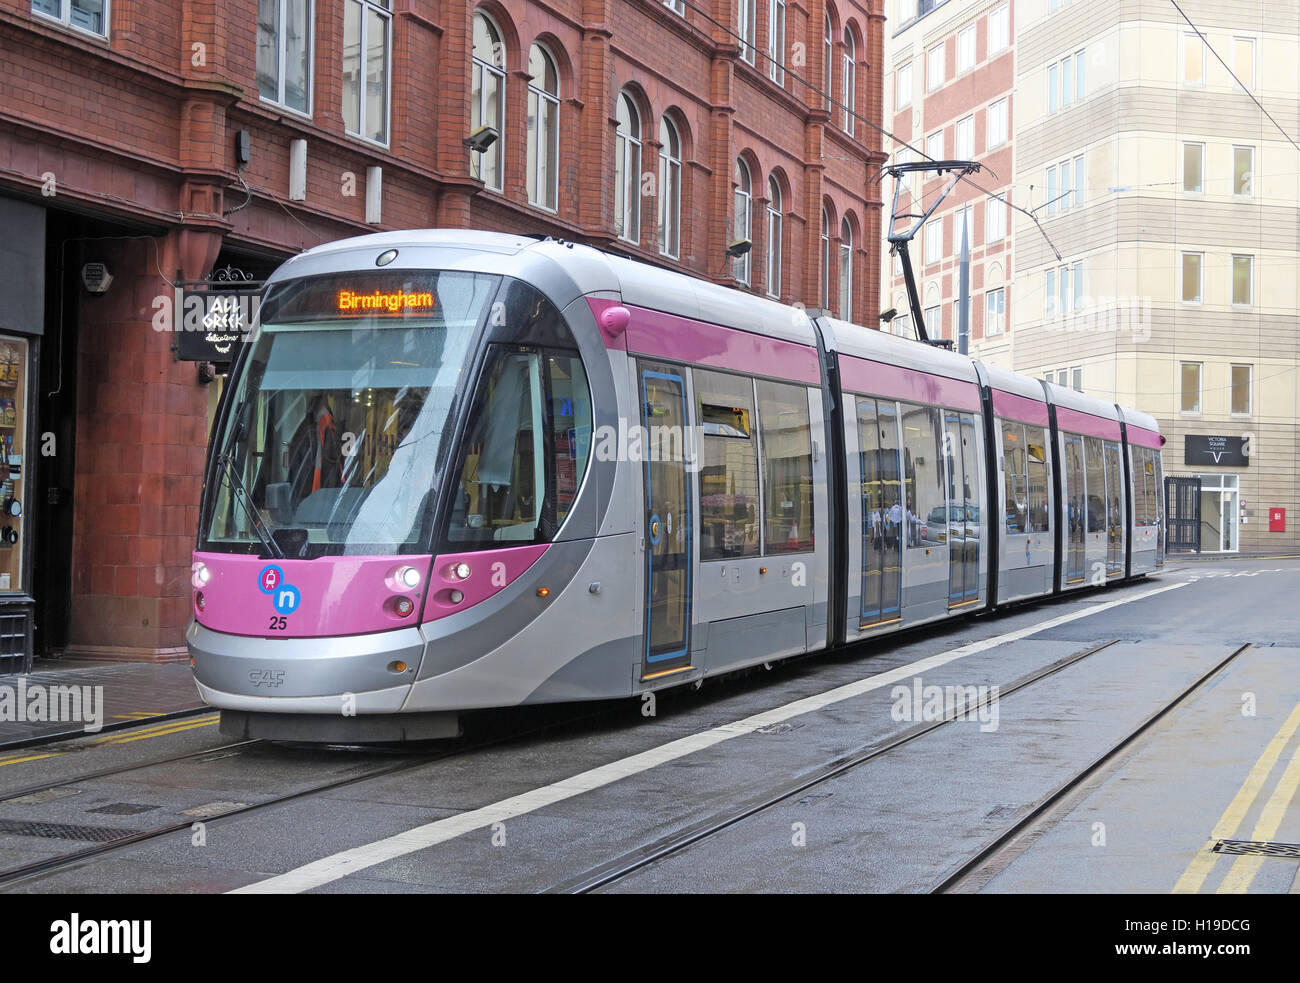 Midland Metro tram at the Central Birmingham New Street stop, UK - Stock Image